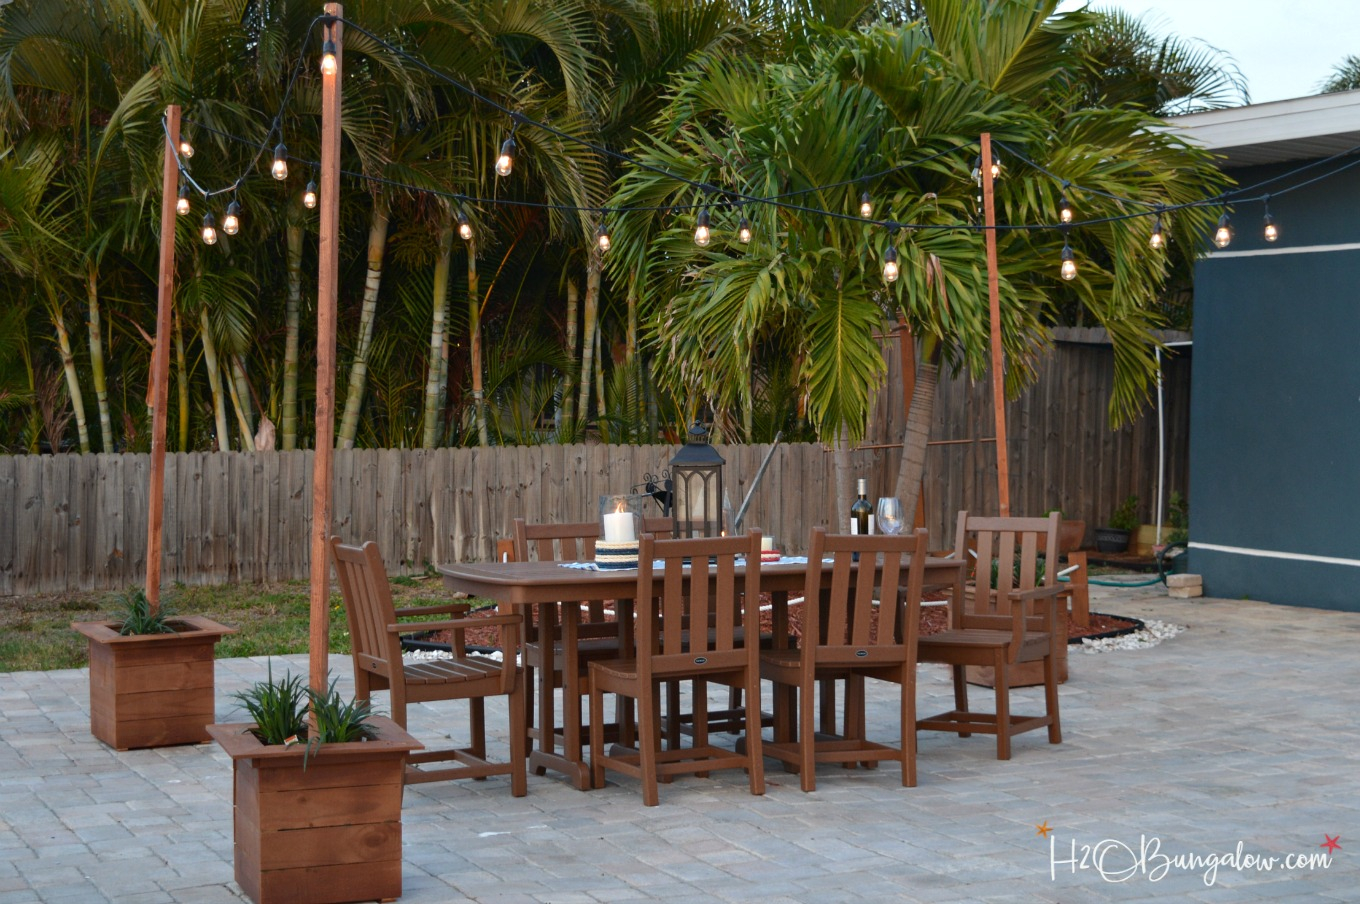 Diy Outdoor String Lights On Poles H2obungalow inside Backyard String Lights Ideas